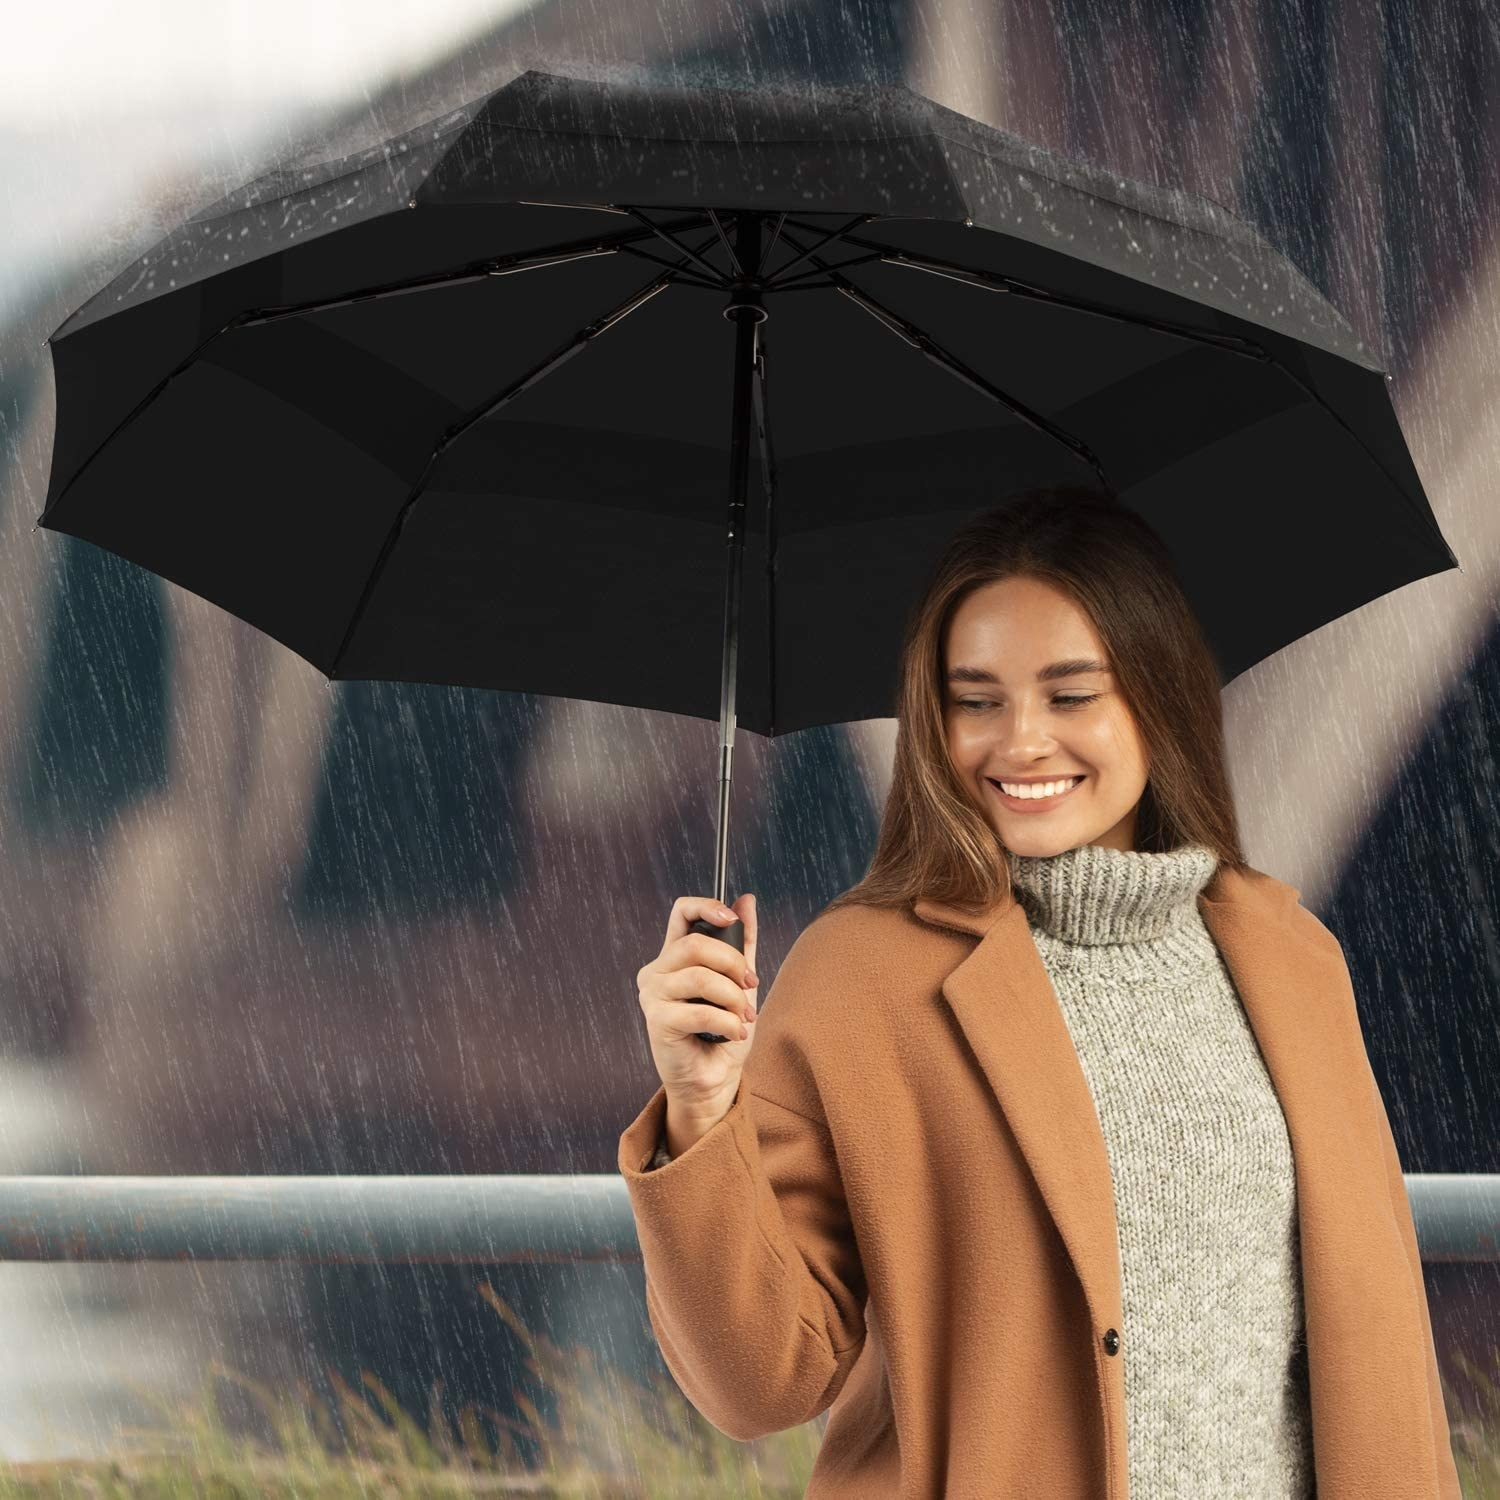 A smiling person holding the umbrella up during a windy rainstorm